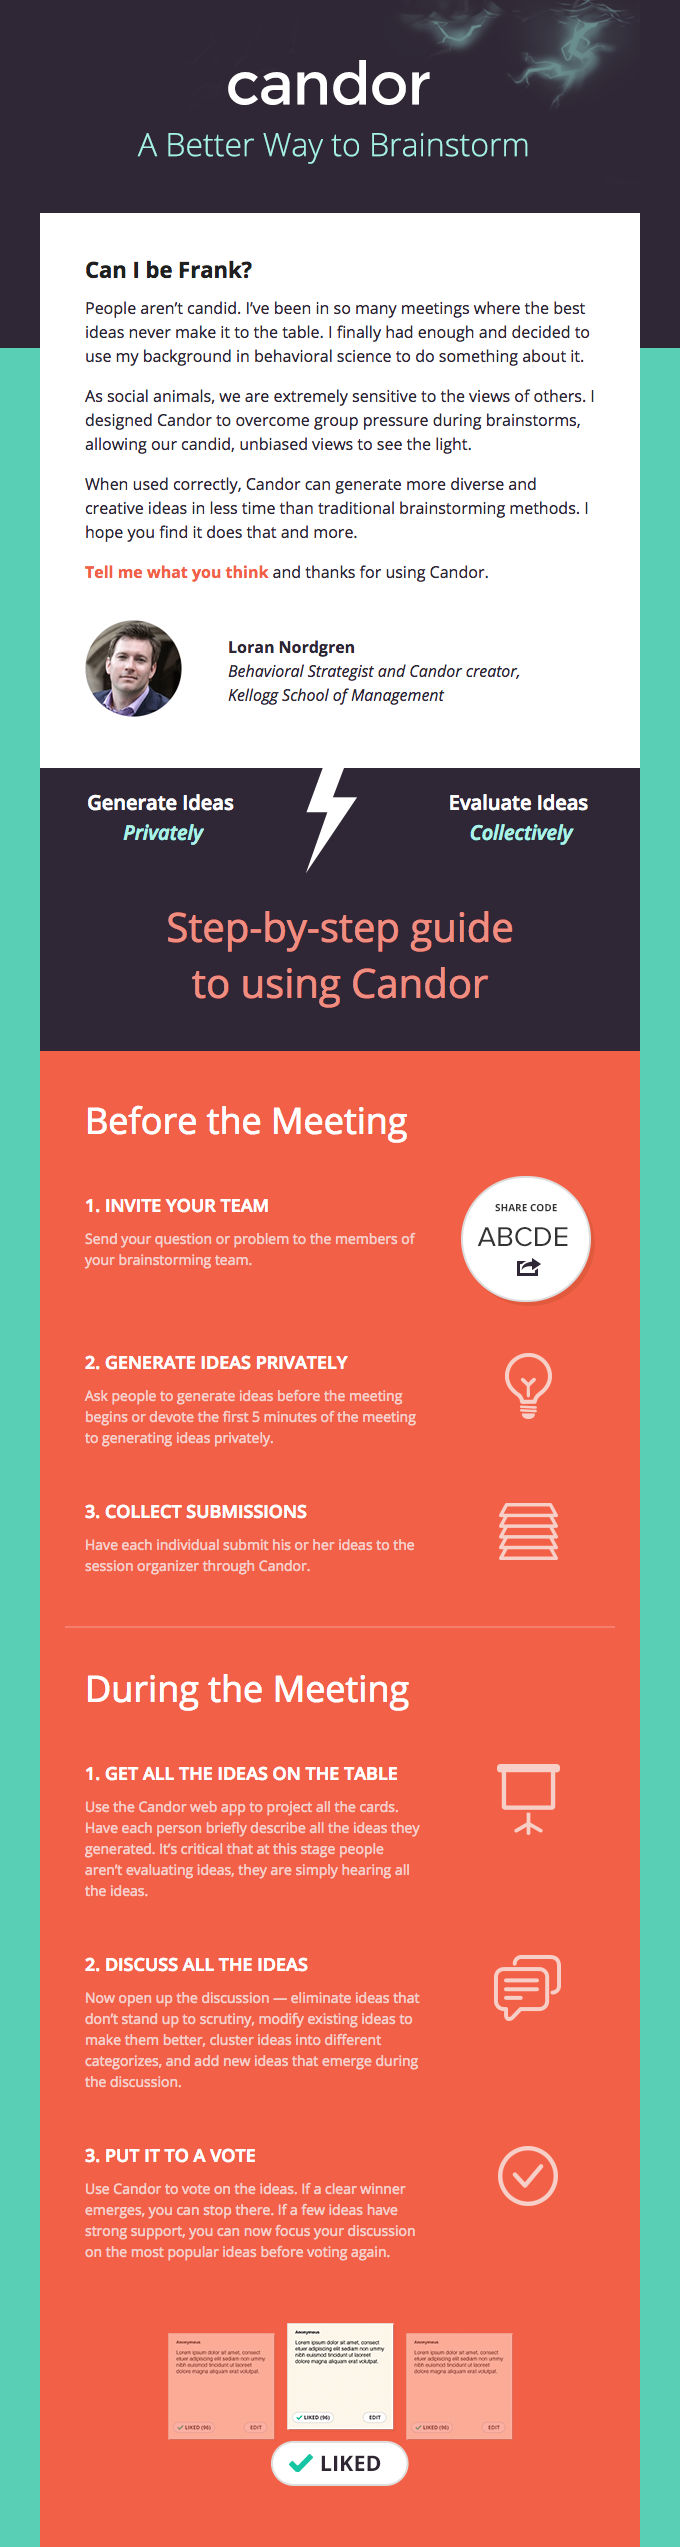 Example of Candor welcome email.